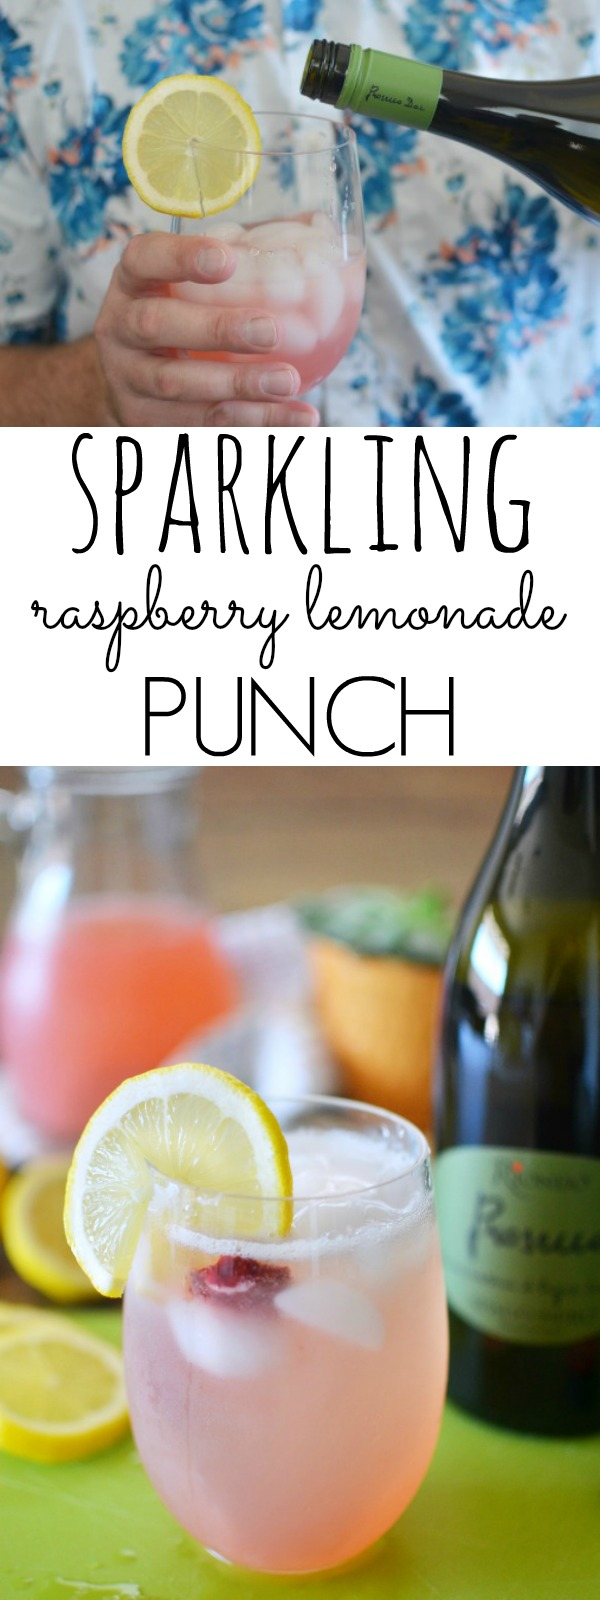 Sparkling Raspberry Lemonade Punch